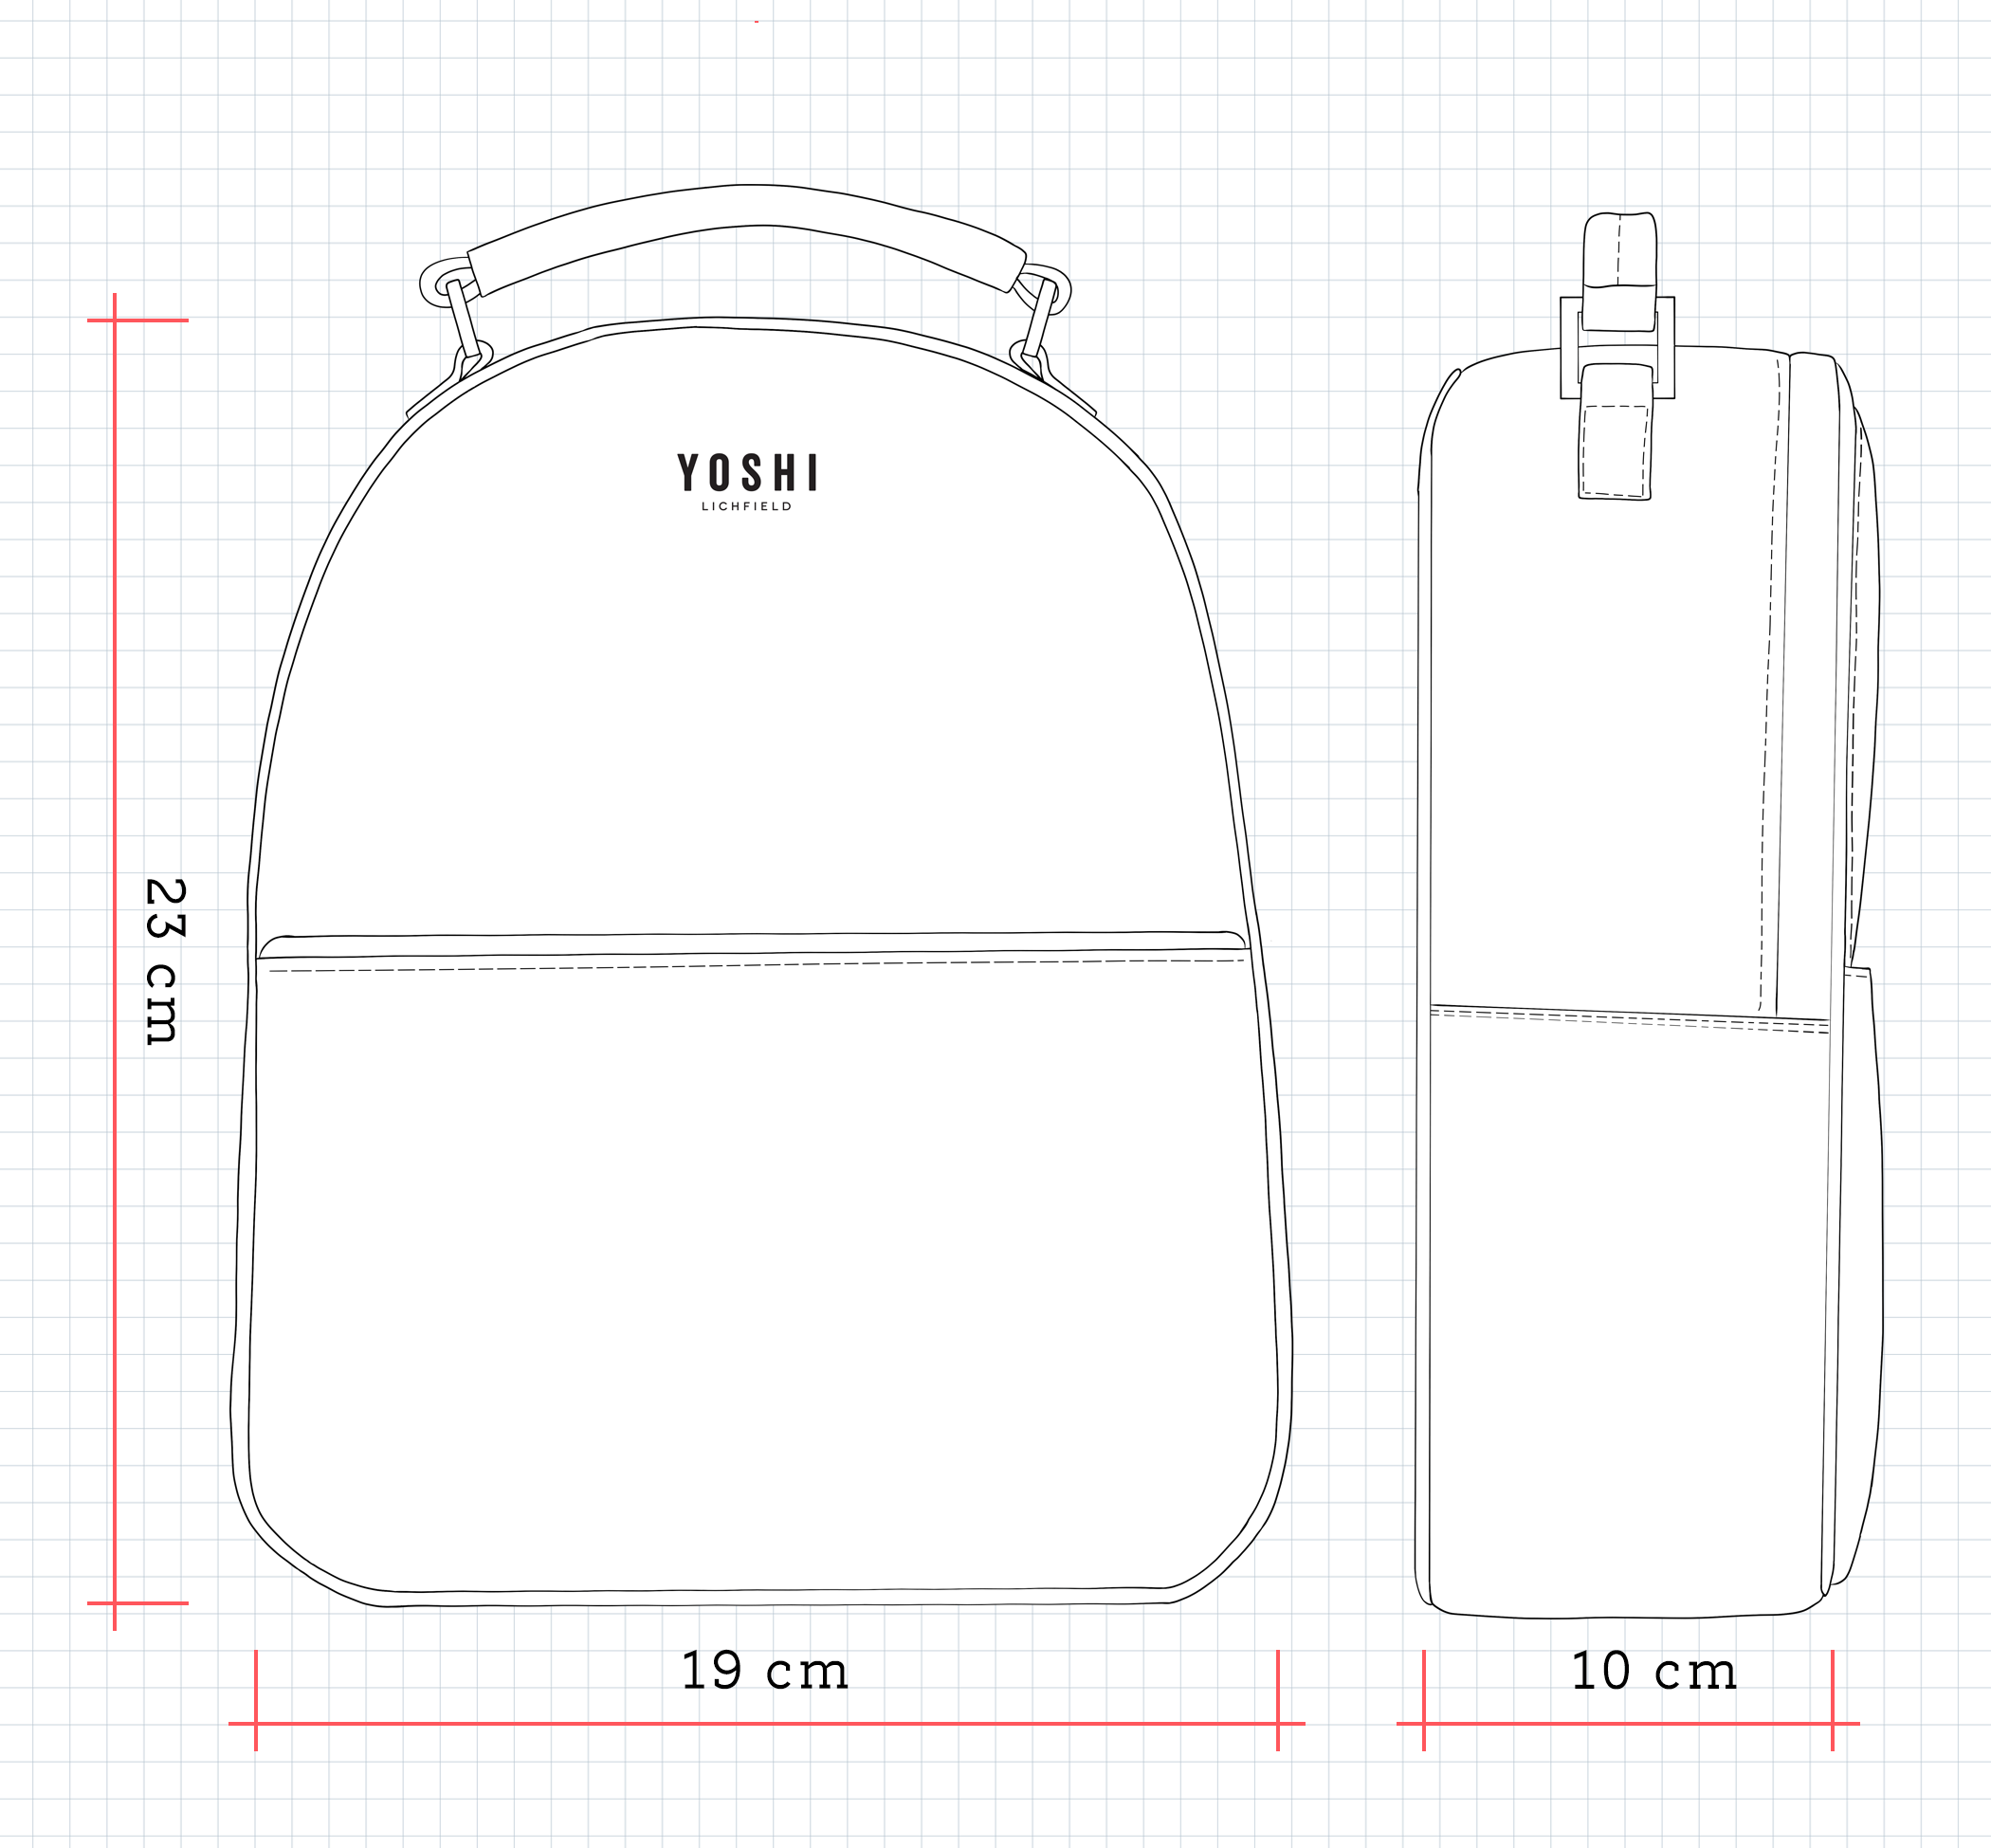 YB222 Leather Backpack Dimensions